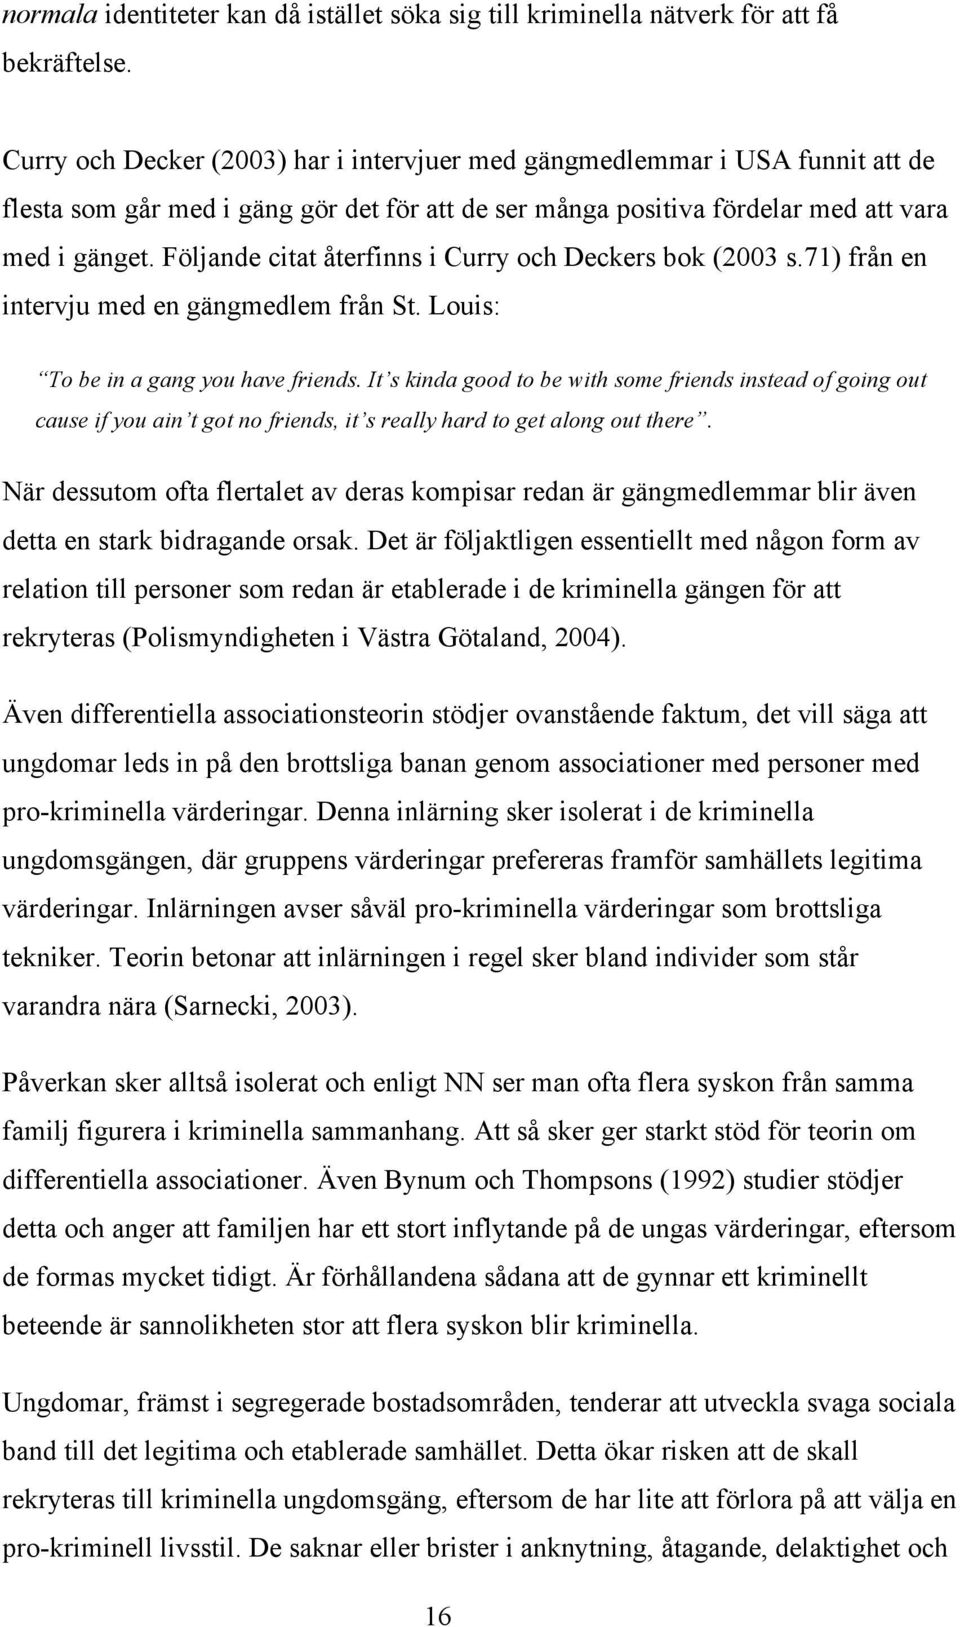 Följande citat återfinns i Curry och Deckers bok (2003 s.71) från en intervju med en gängmedlem från St. Louis: To be in a gang you have friends.